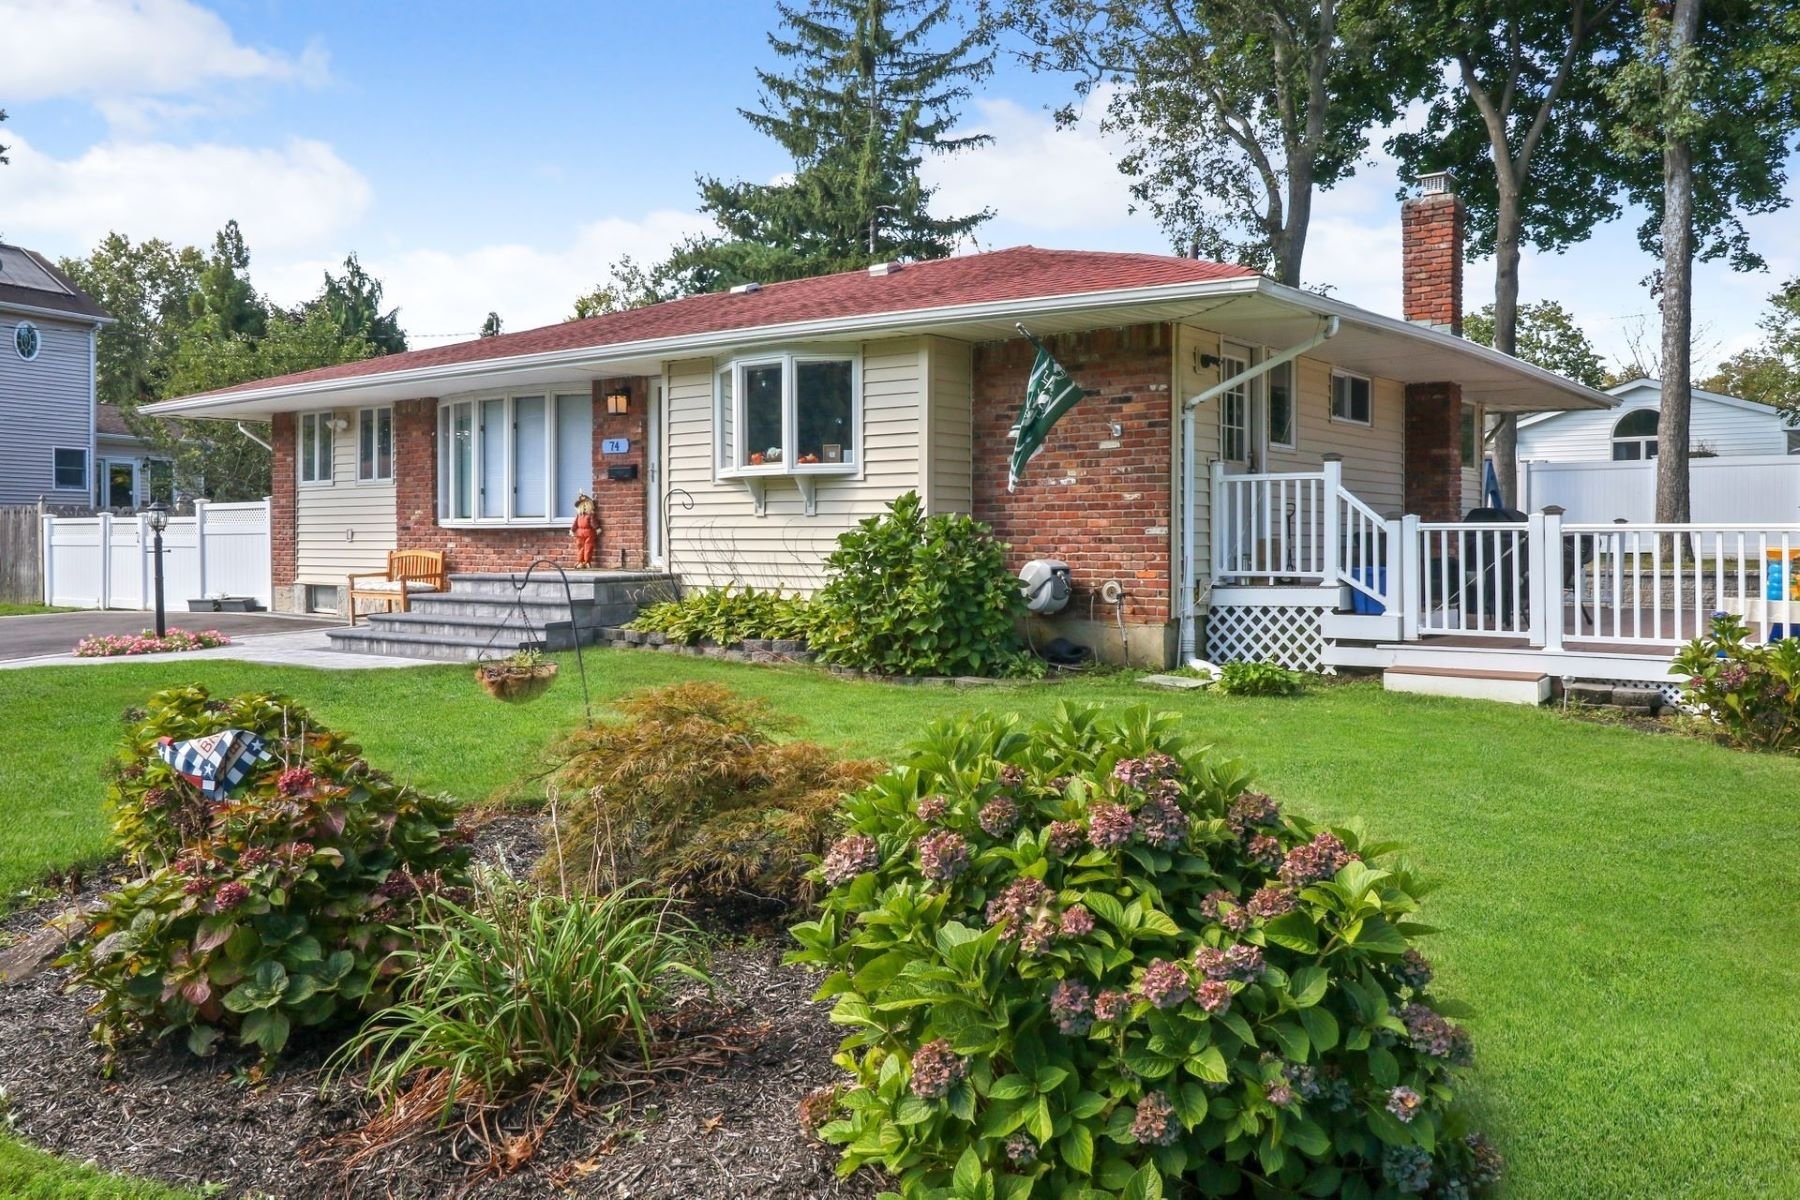 Single Family Homes for Sale at Commack 74 Hedgerow Ln Commack, New York 11725 United States